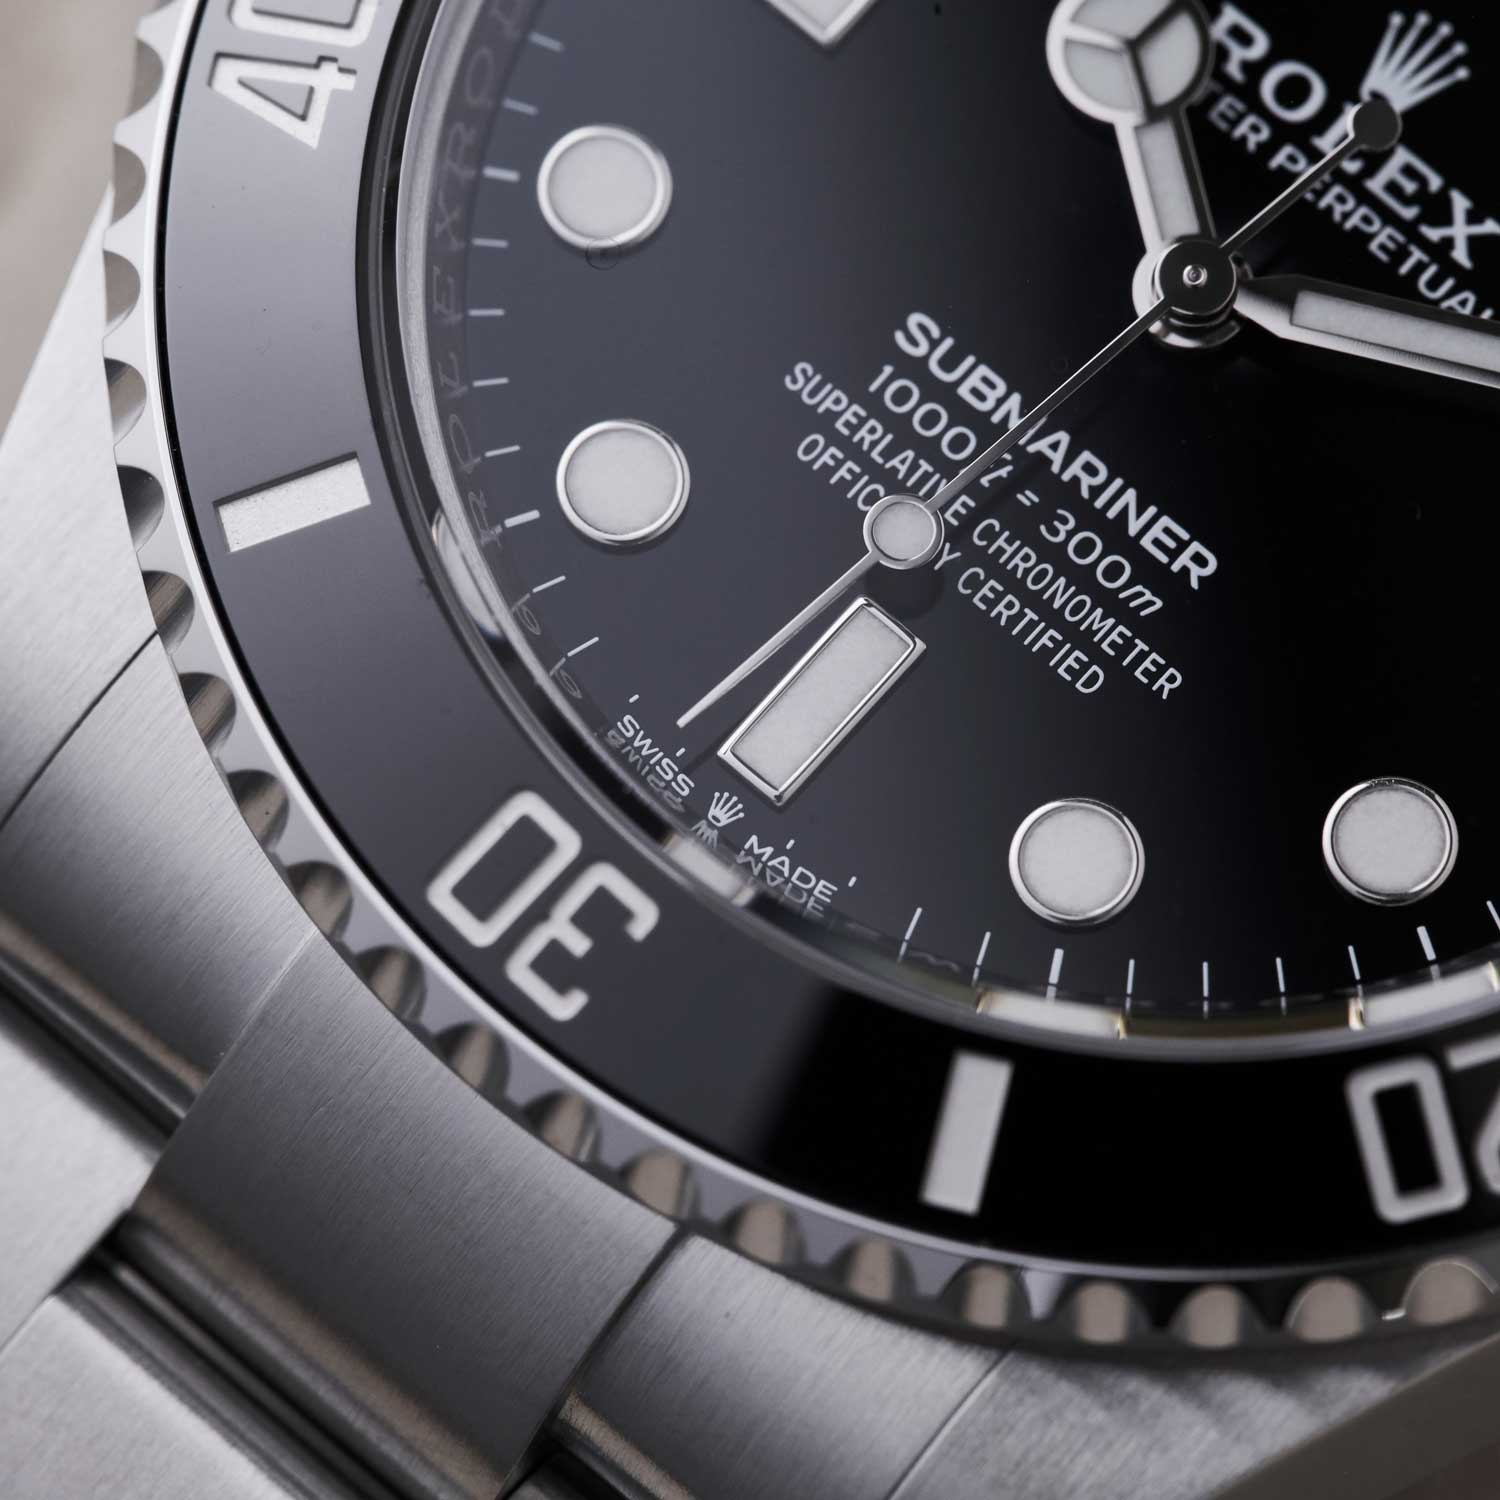 """Since 2018, Rolex has demarcated all of their Superlative Chronometer rated watches with a new coronet printed between the words """"Swiss Made"""" at 6 o'clock; this now also appears on the dial of the 2020 family of Submariner watches (©Revolution)"""